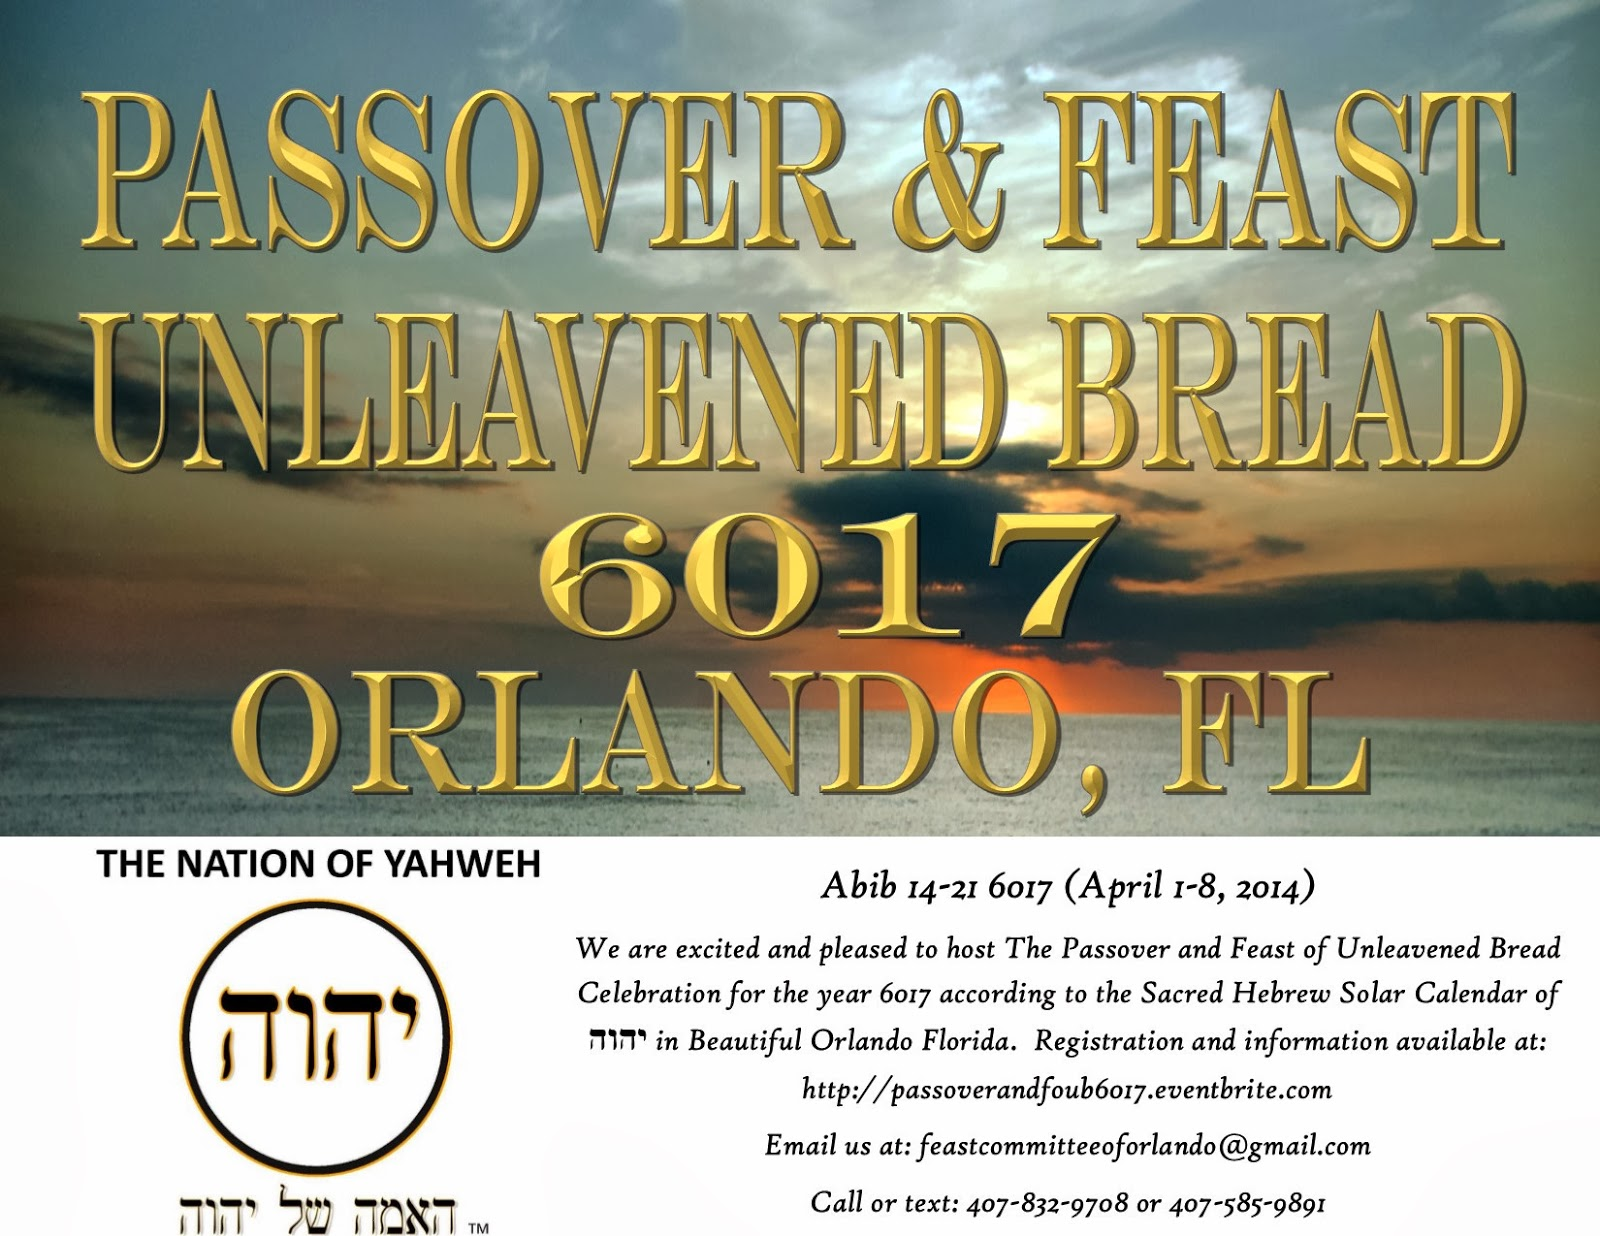 Passover & Feast of Unleavened Bread 6017 Orlando, FL